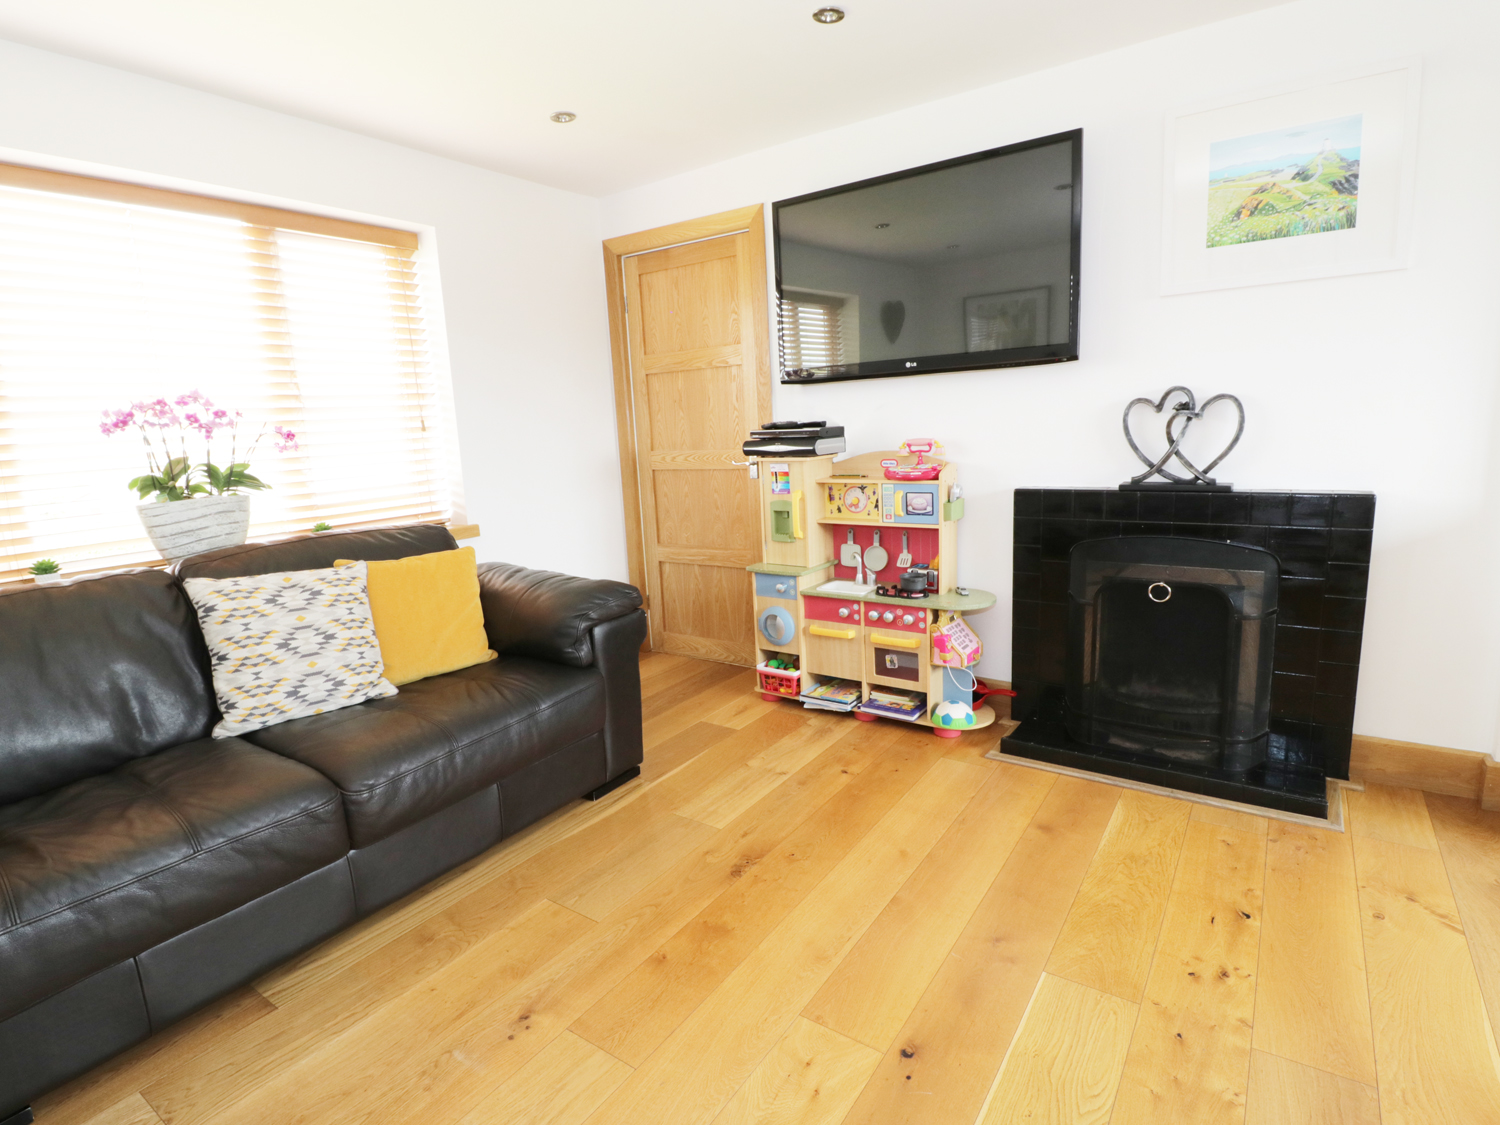 3 bedroom Cottage for rent in Llanerchymedd